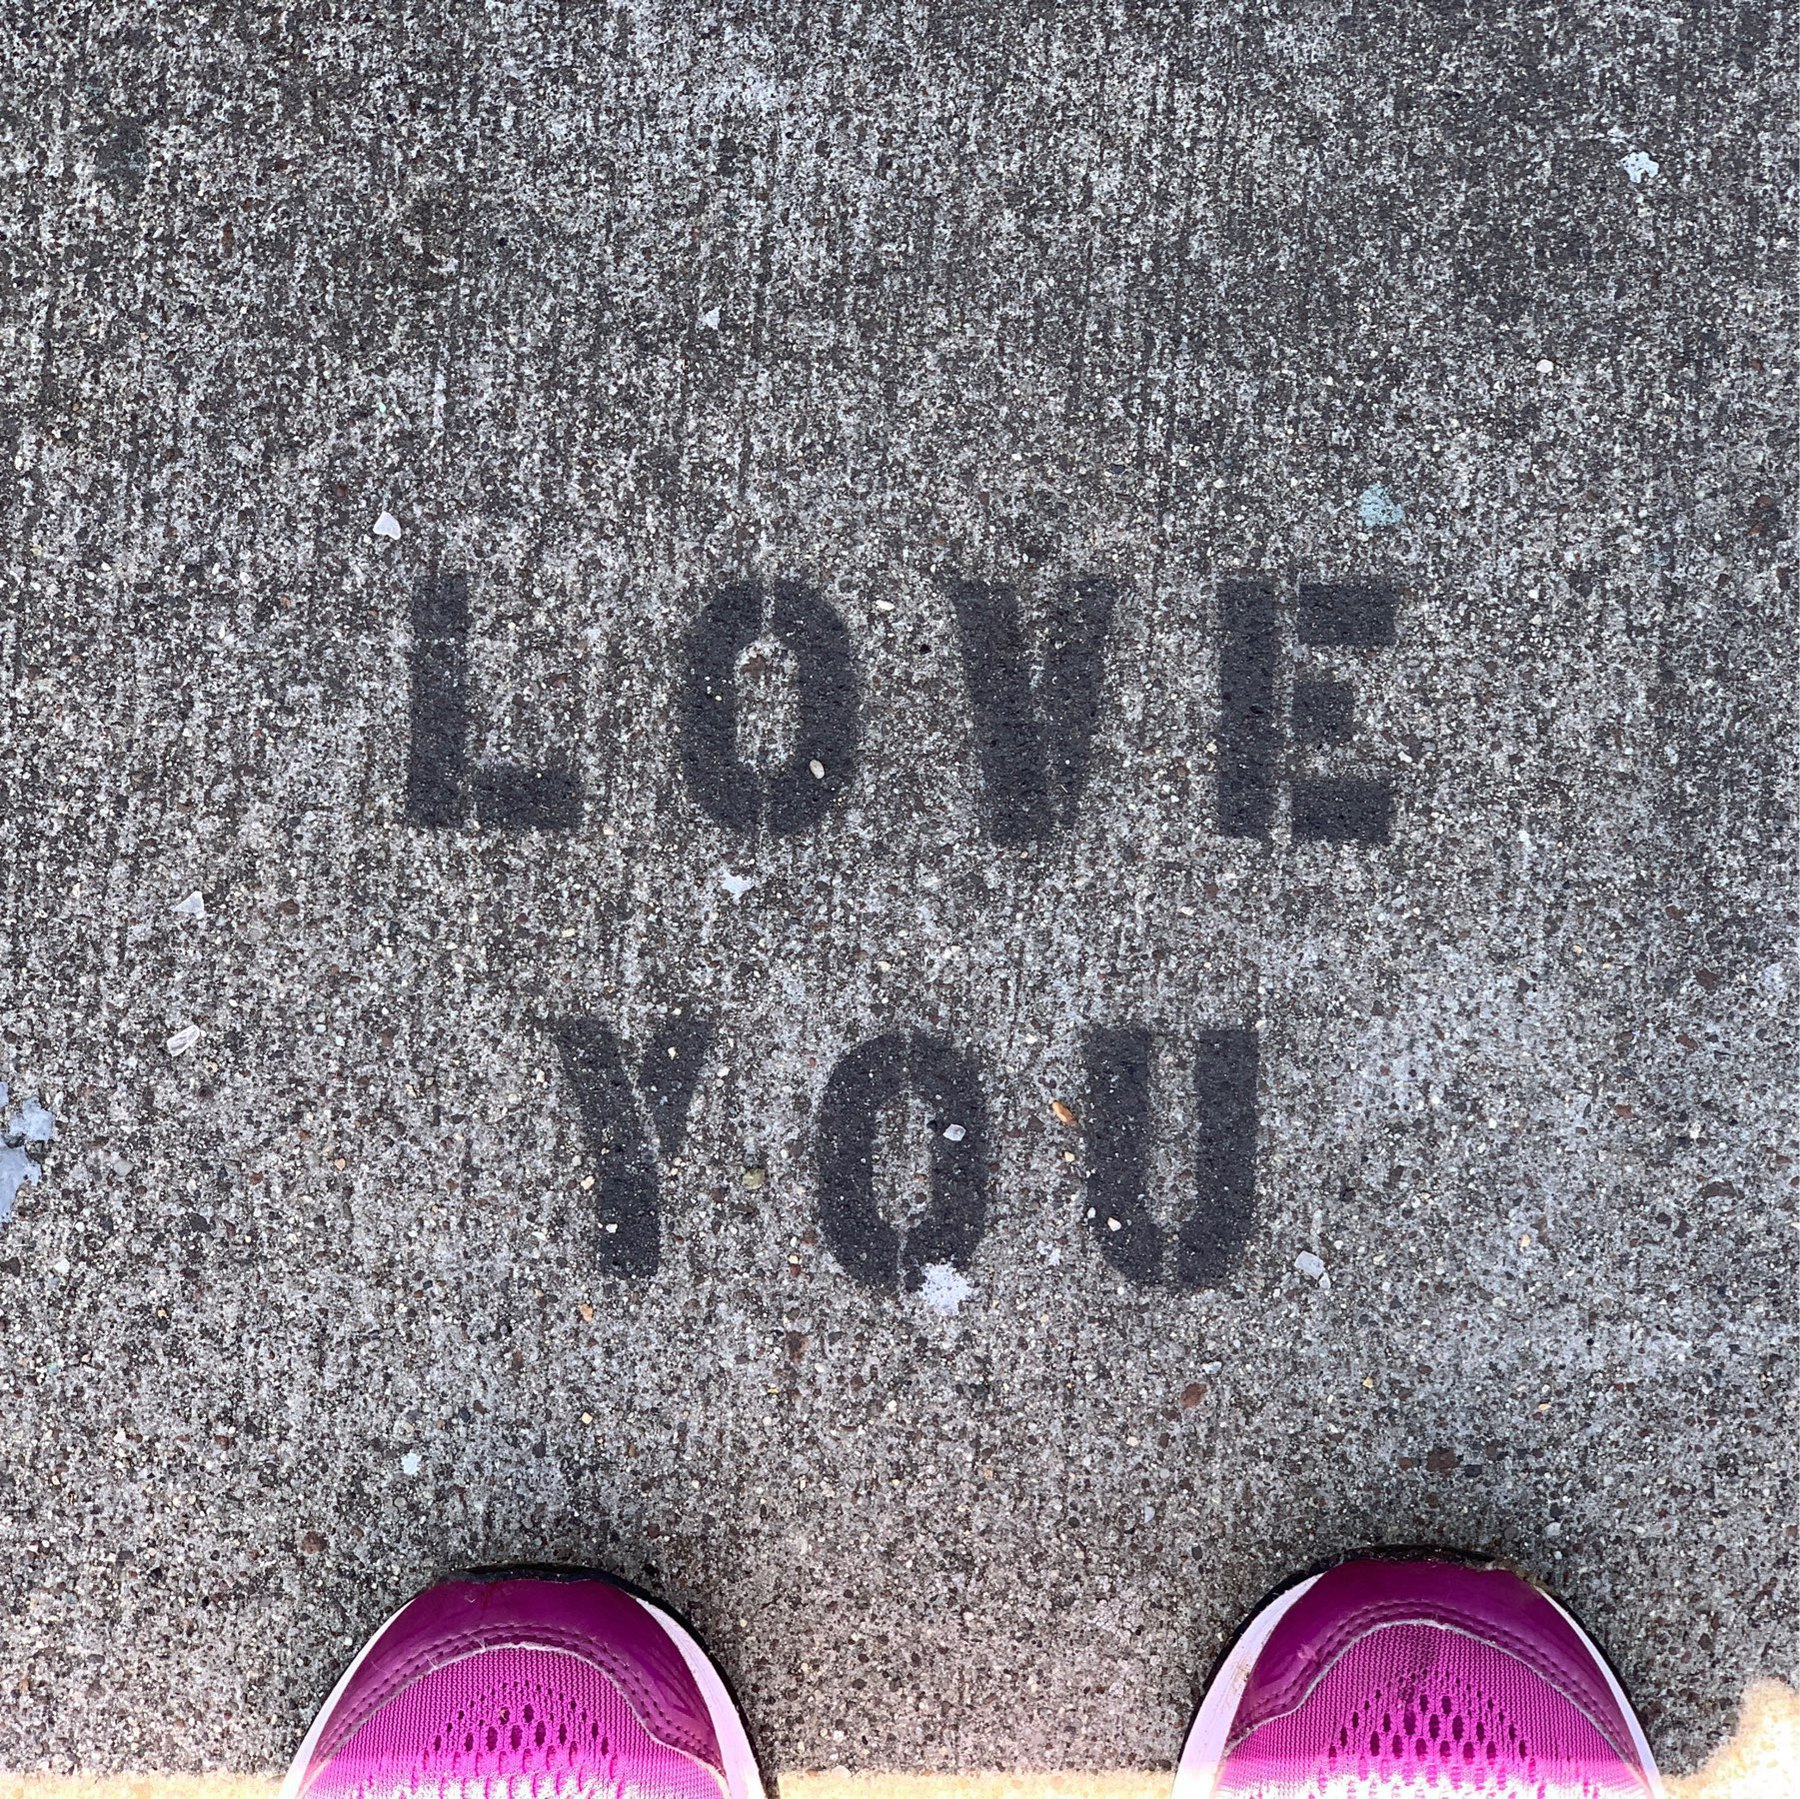 stenciled LOVE YOU on the sidewalk